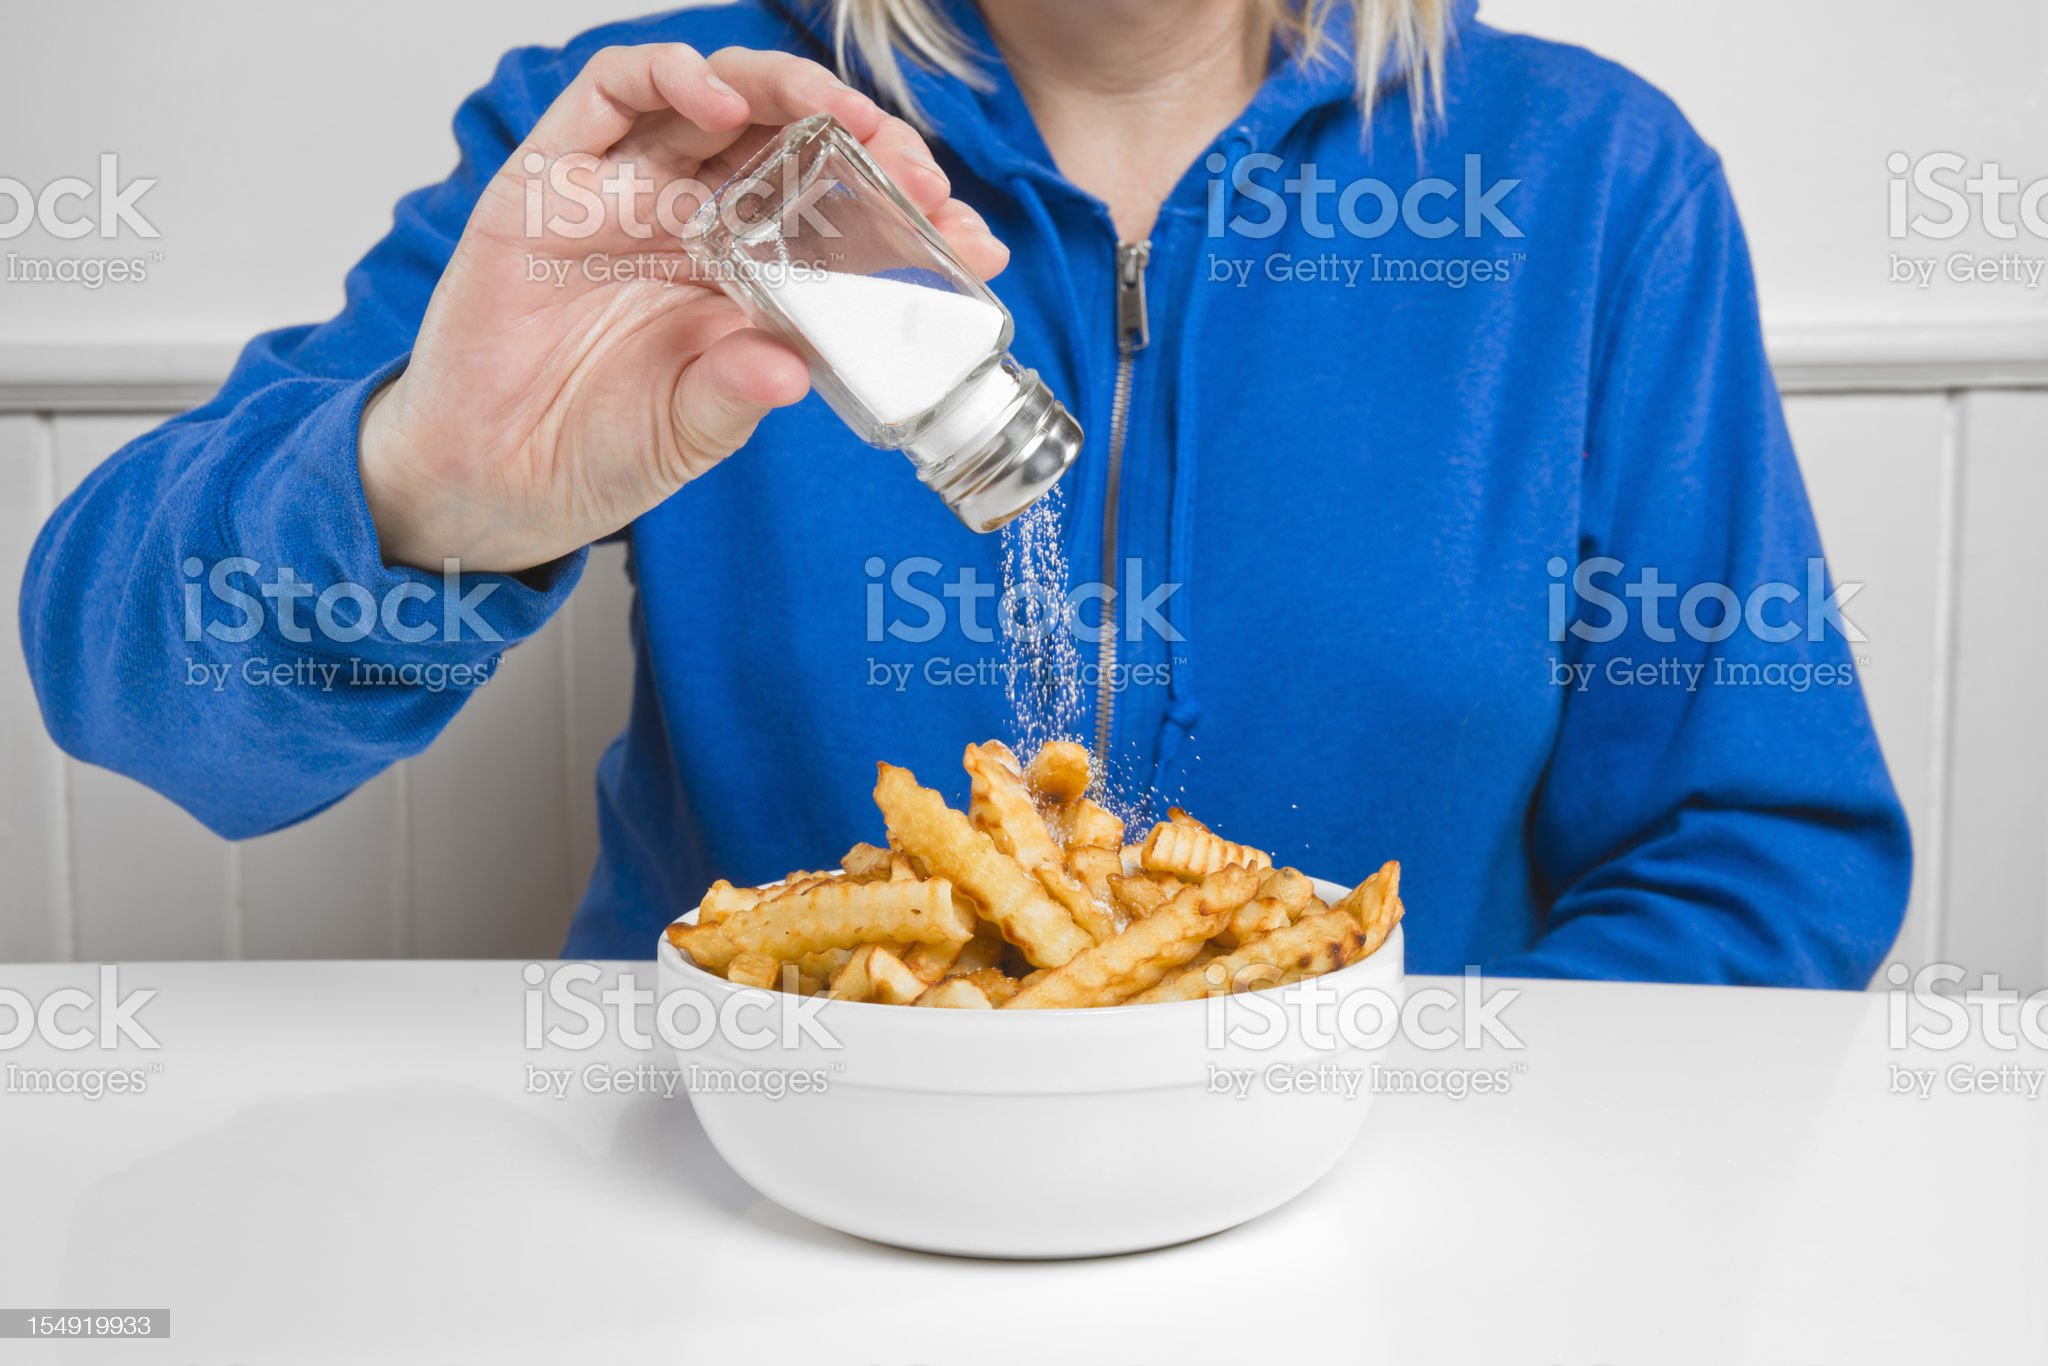 Salt on french fries royalty-free stock photo